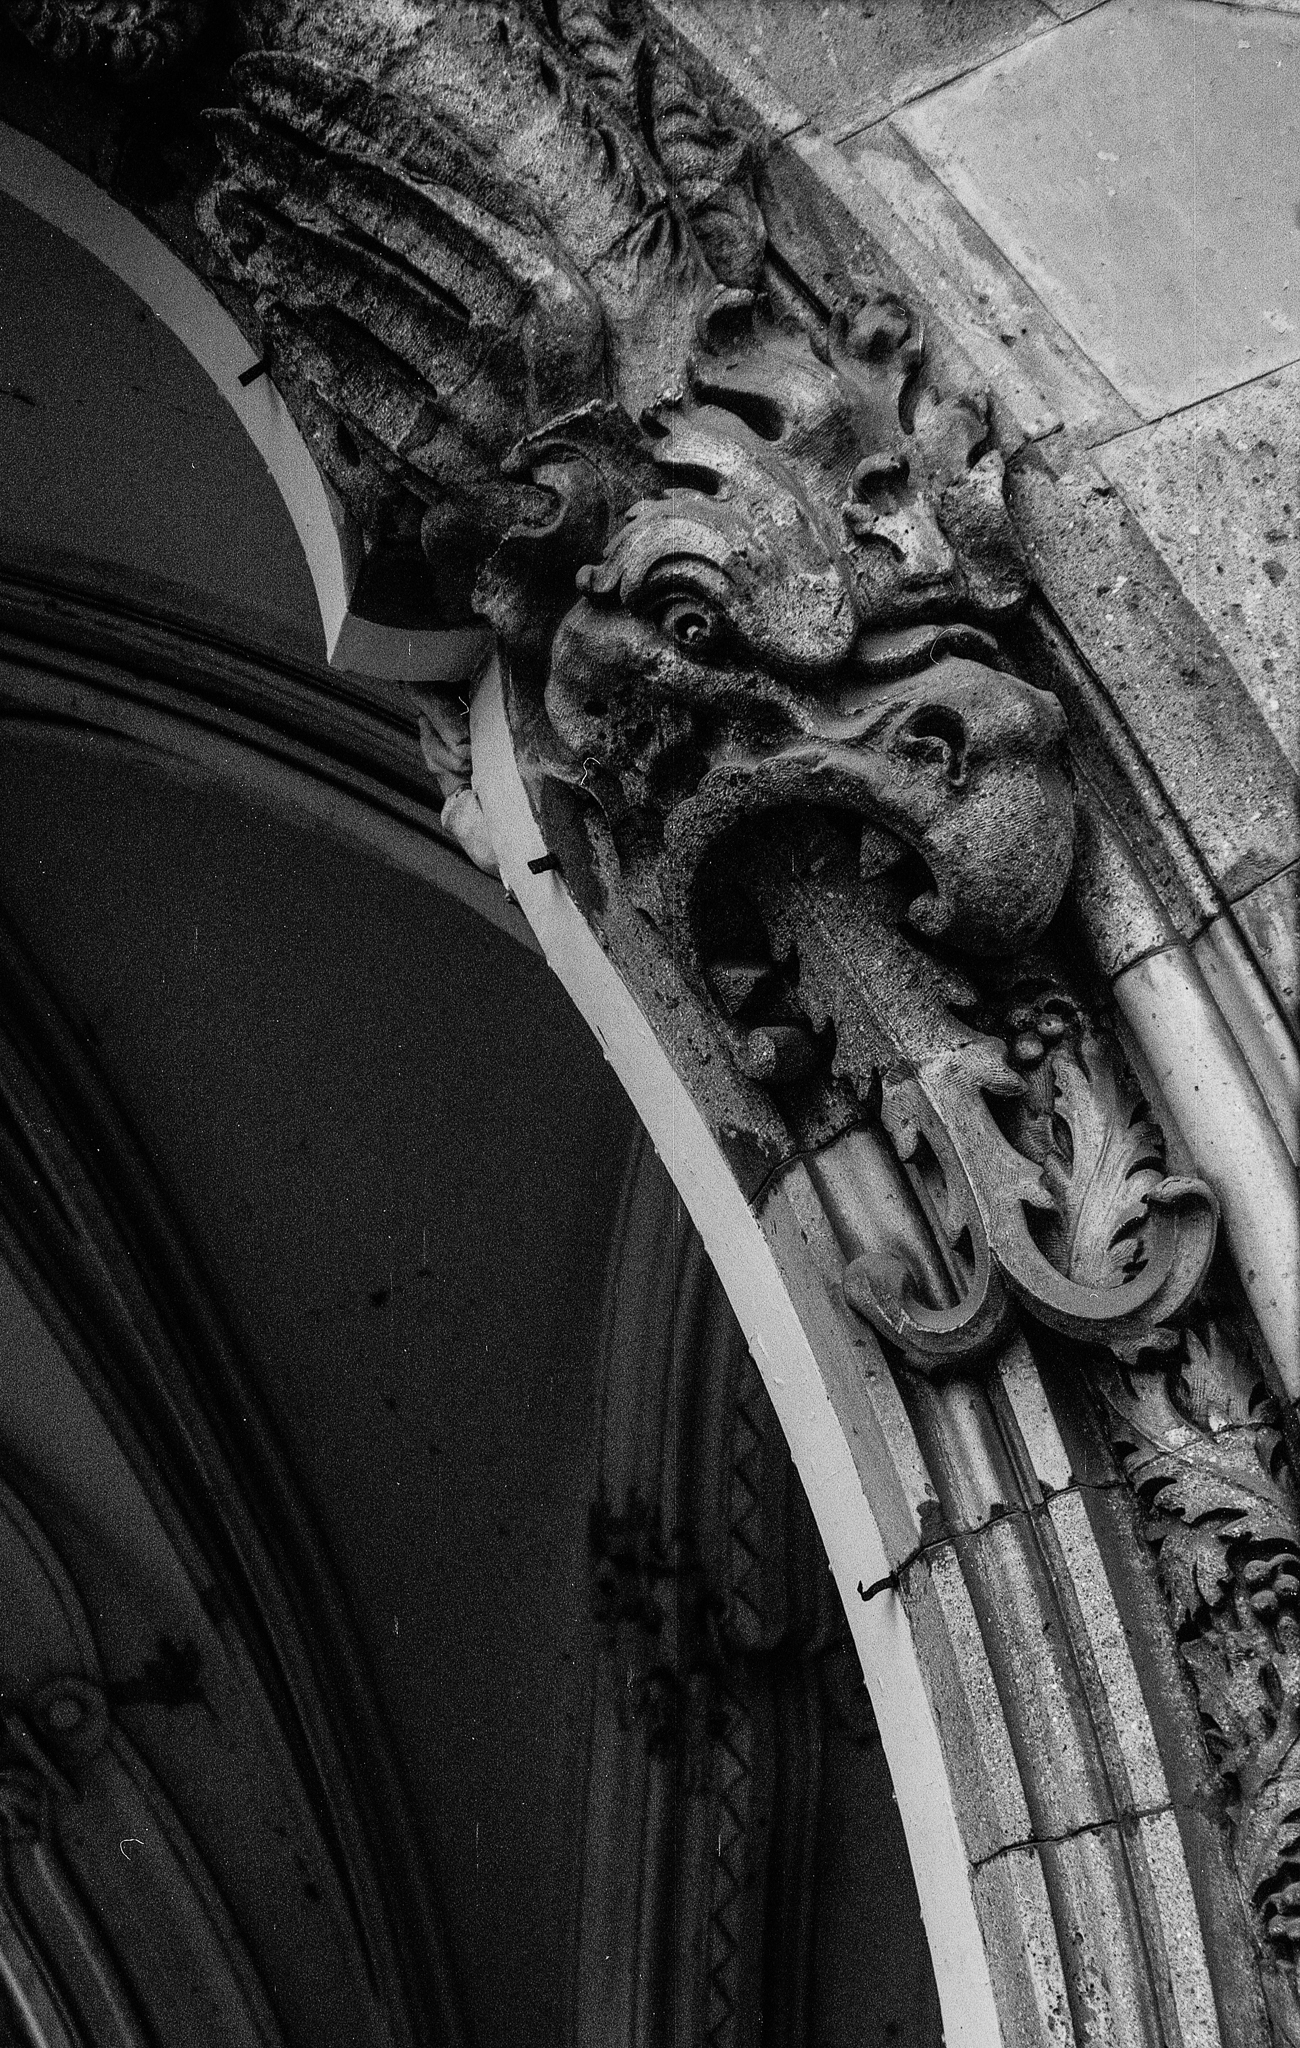 Archway Protector